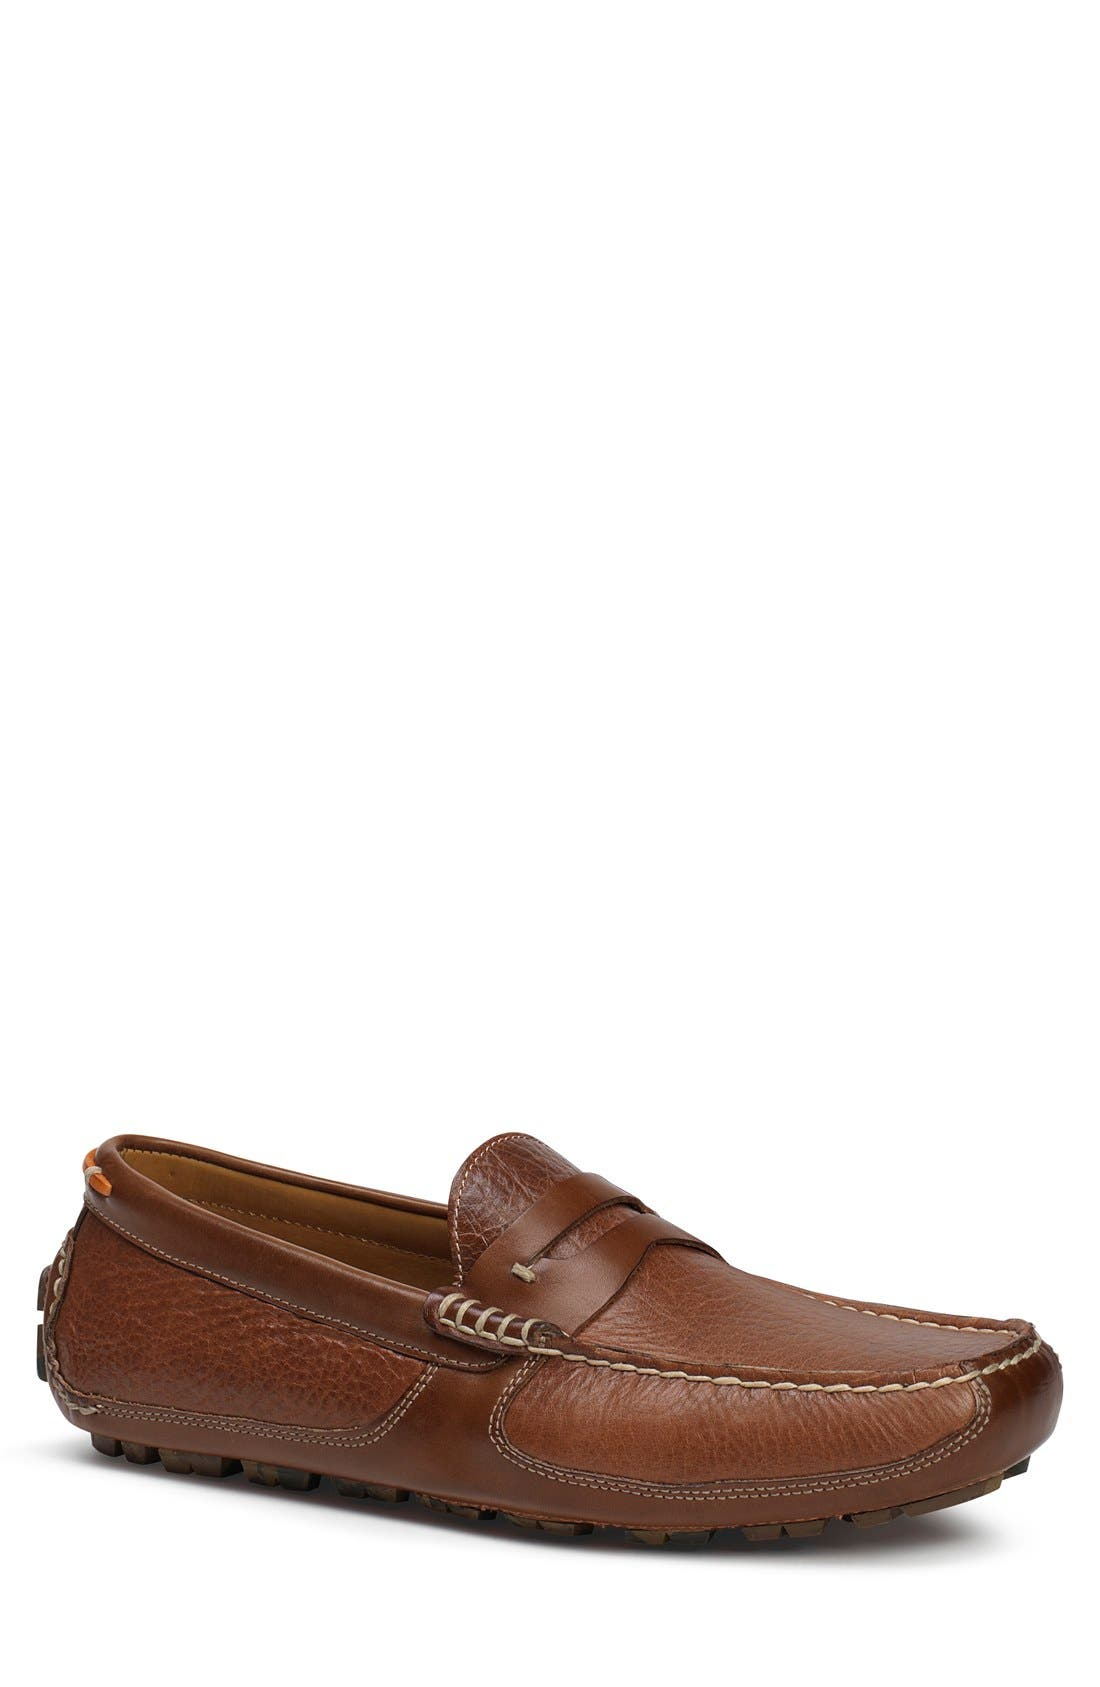 TRASK 'Derek' Driving Shoe, Main, color, SADDLE TAN